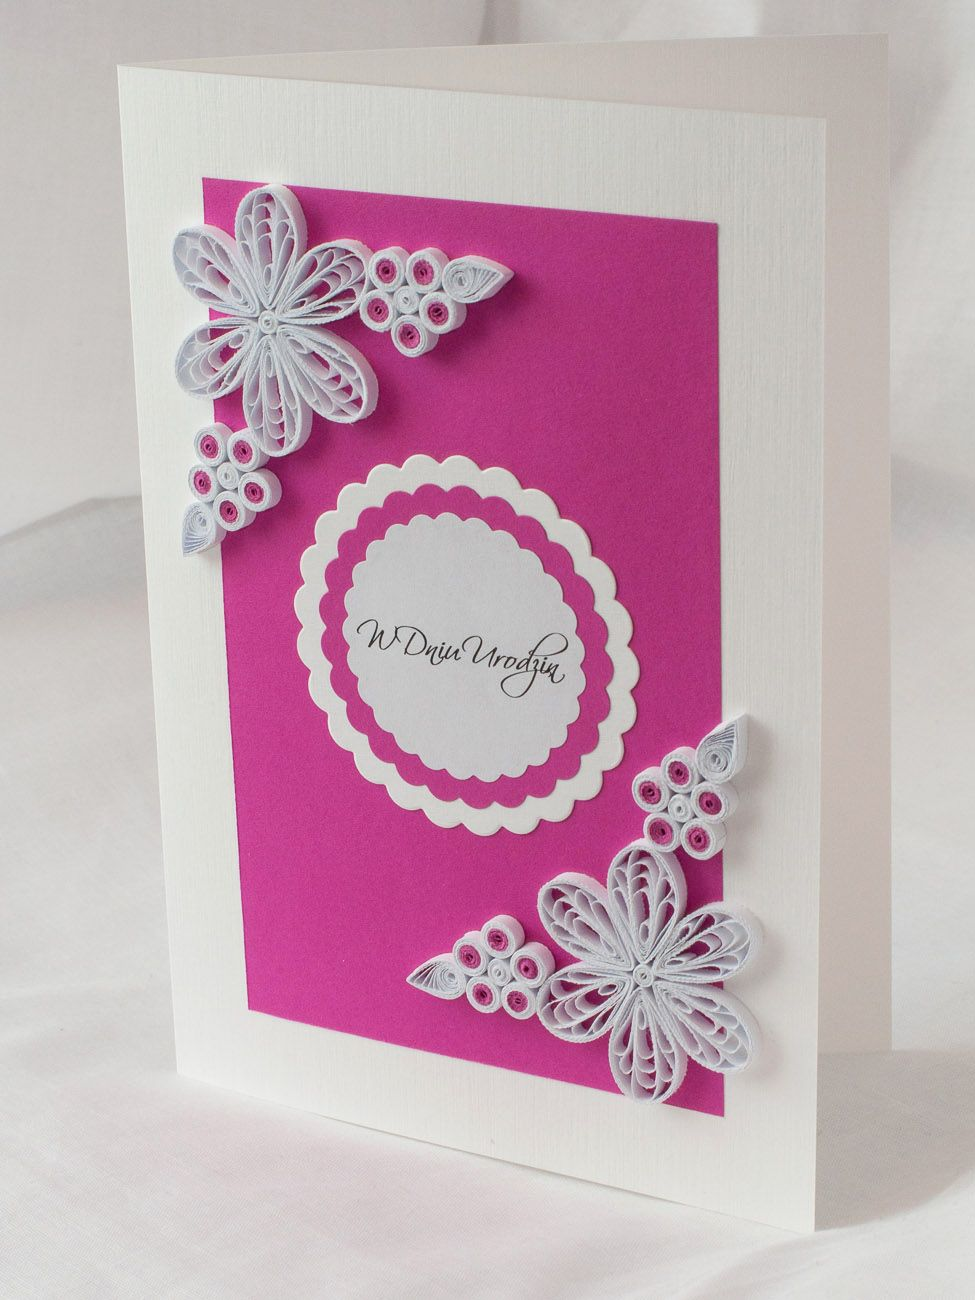 Jewelry of the week easy stretch bracelets quilling birthday quilling birthday cards handmade greeting cards unique kristyandbryce Image collections